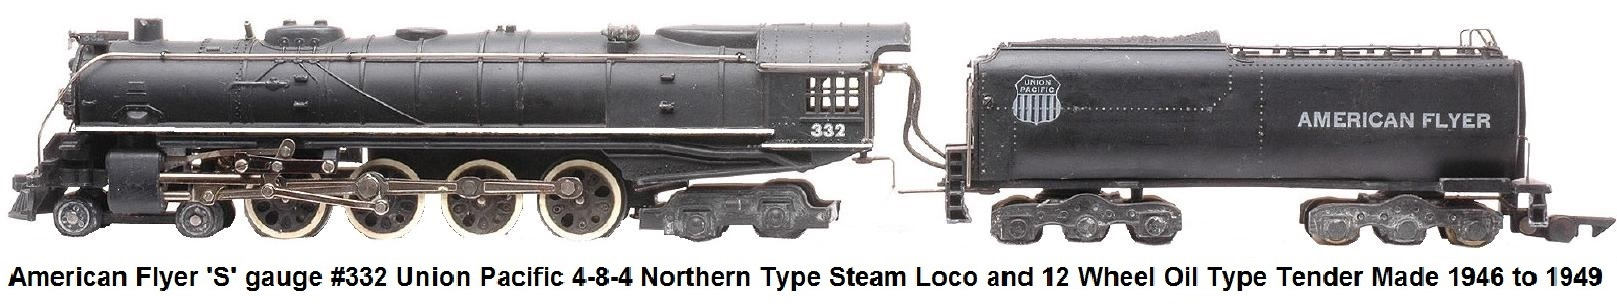 3/16 Scale (S-Scale) Vintage American Flyer #332 Union Pacific 4-8-4 steam loco and 12 wheel tender 1946-49